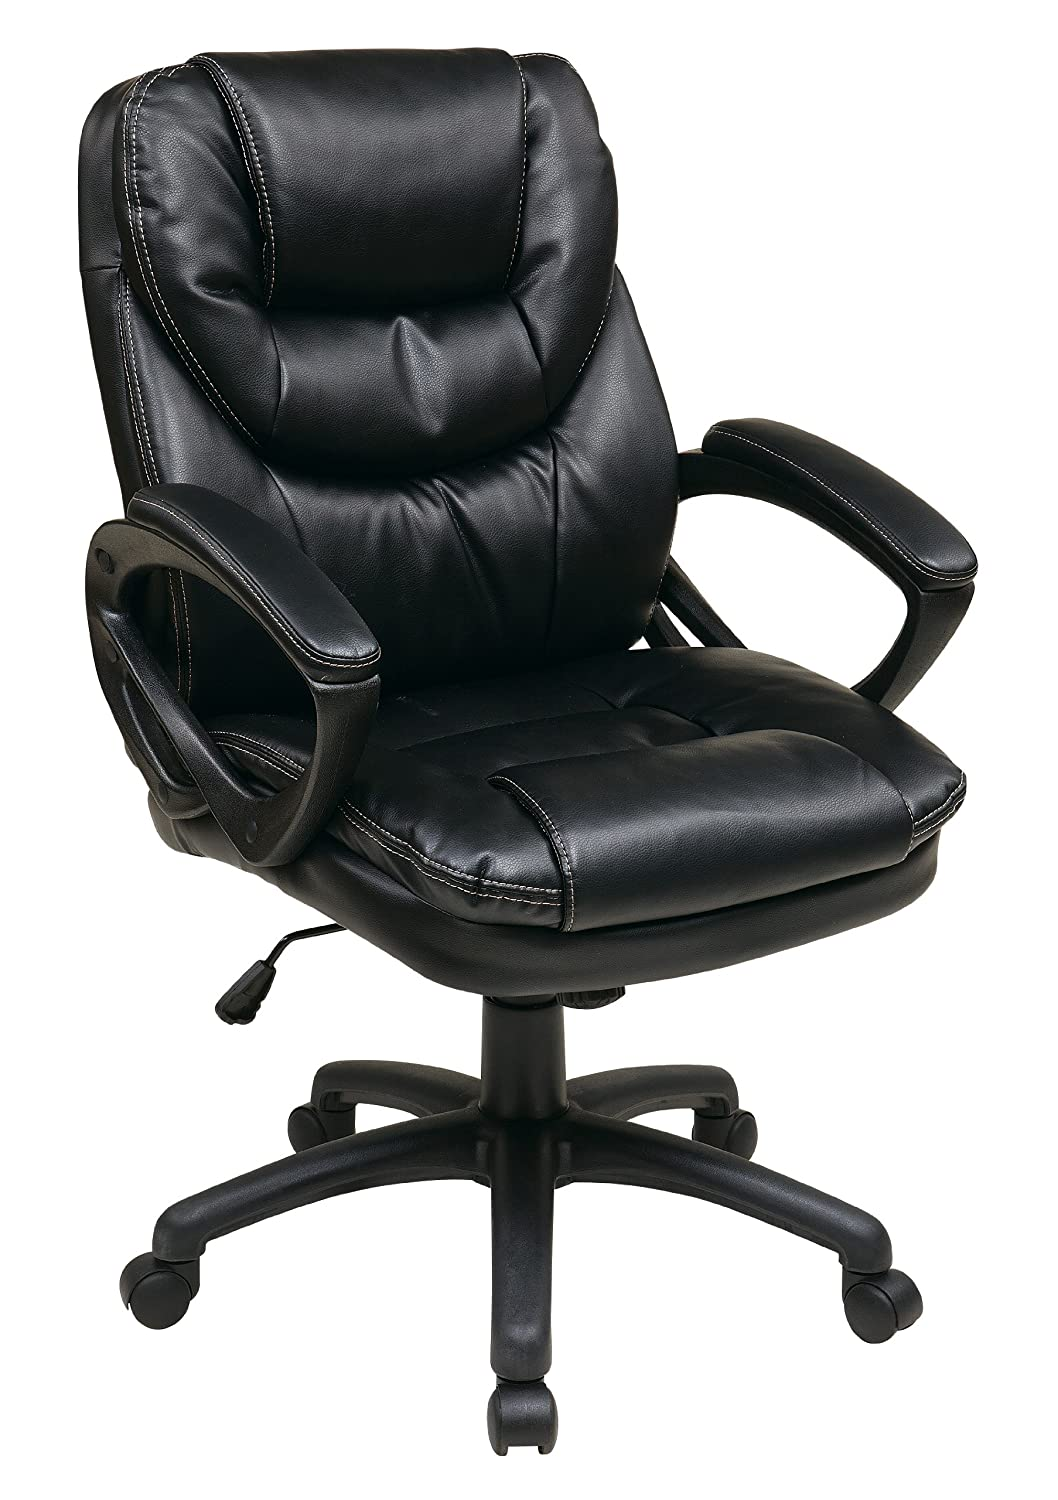 Back Support Chair Best Office Chair For Lumbar Support Reviews And Comparison